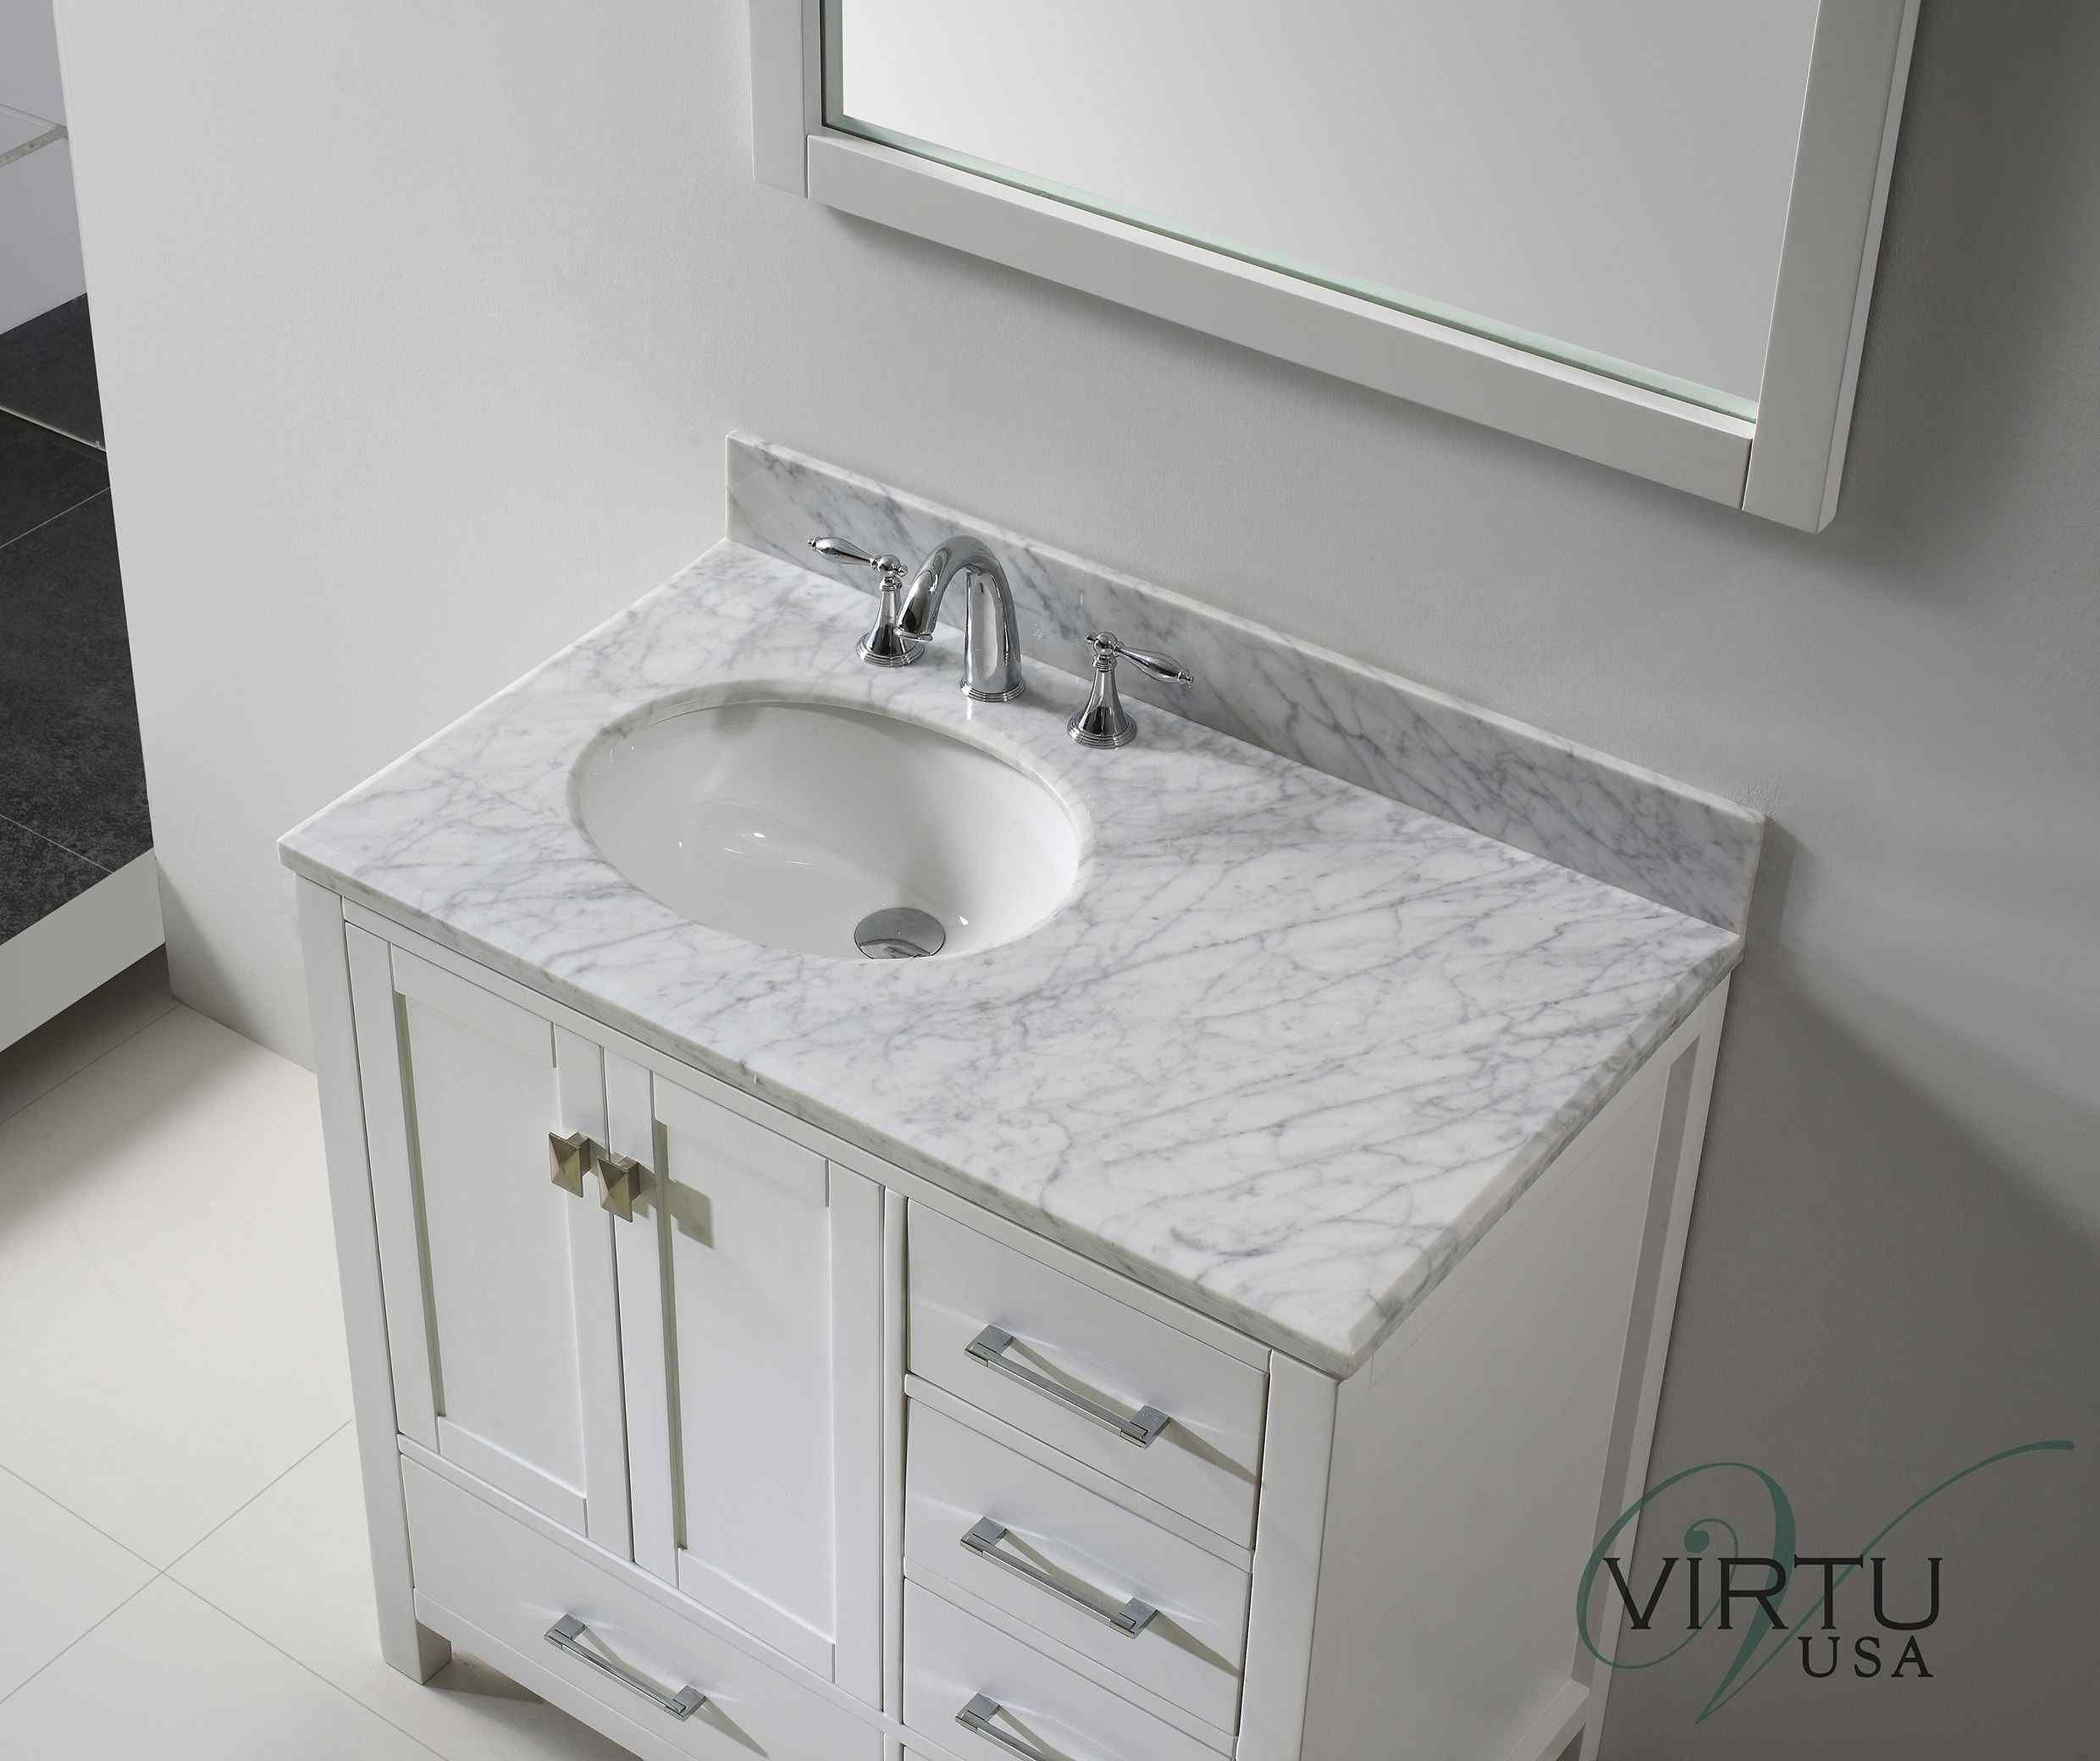 12 Example Of Inspirational Small Bathroom Ideas Vanities Counter Tops To Inspire You Small Bathroom Vanities White Vanity Bathroom Small Bathroom Storage